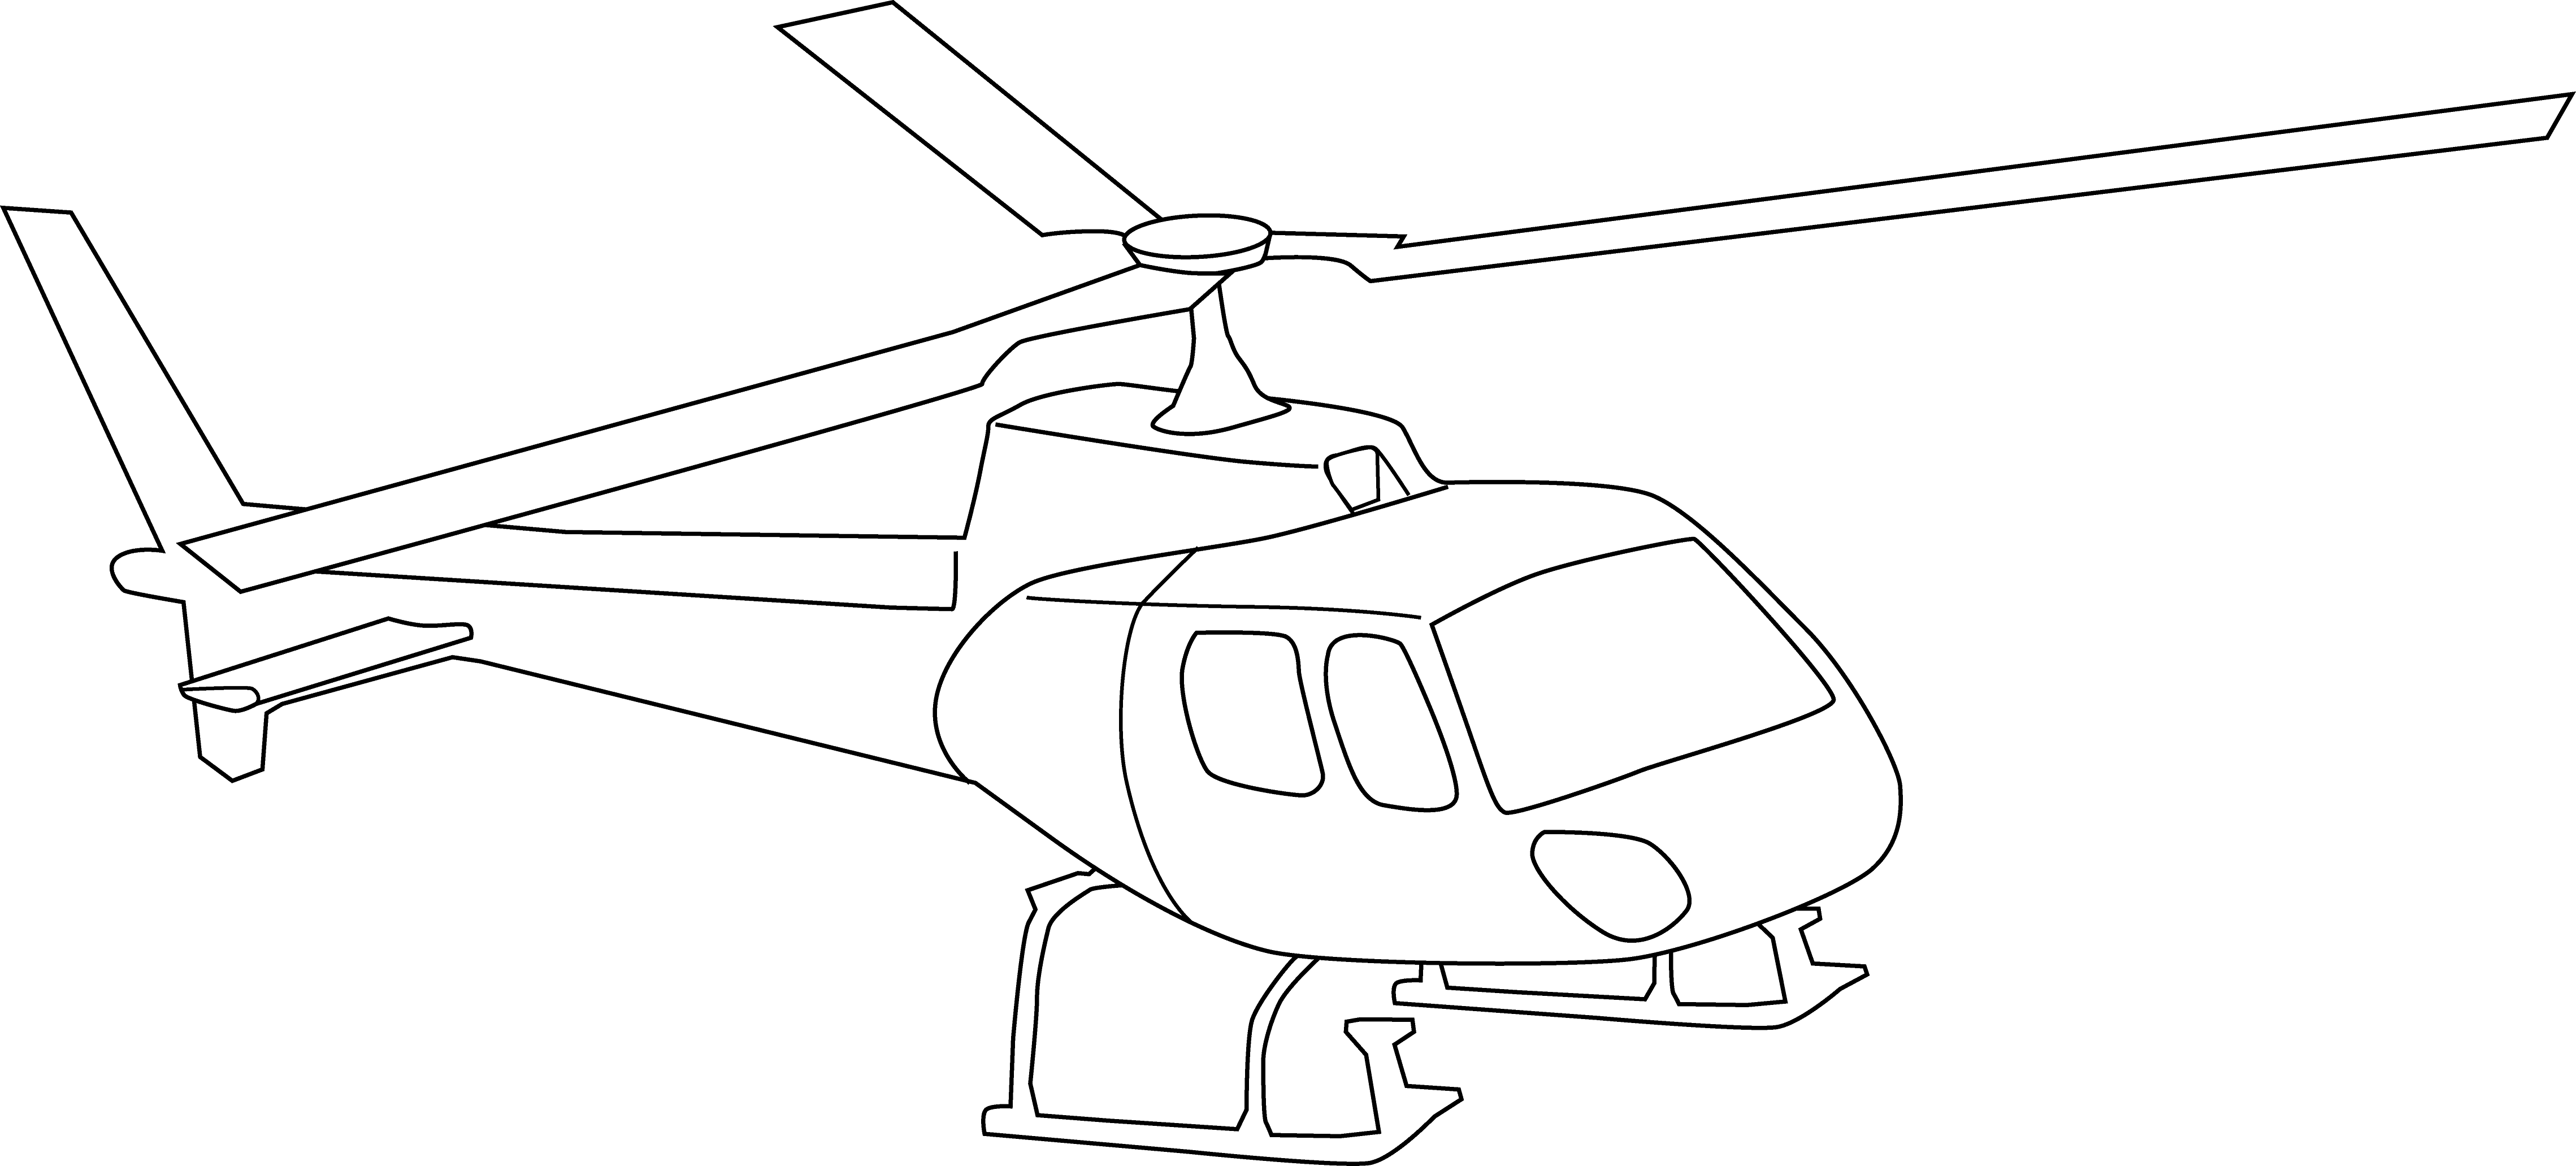 4558x2063 Classy Helicopter Clipart Black And White Blackhawk Clip Art